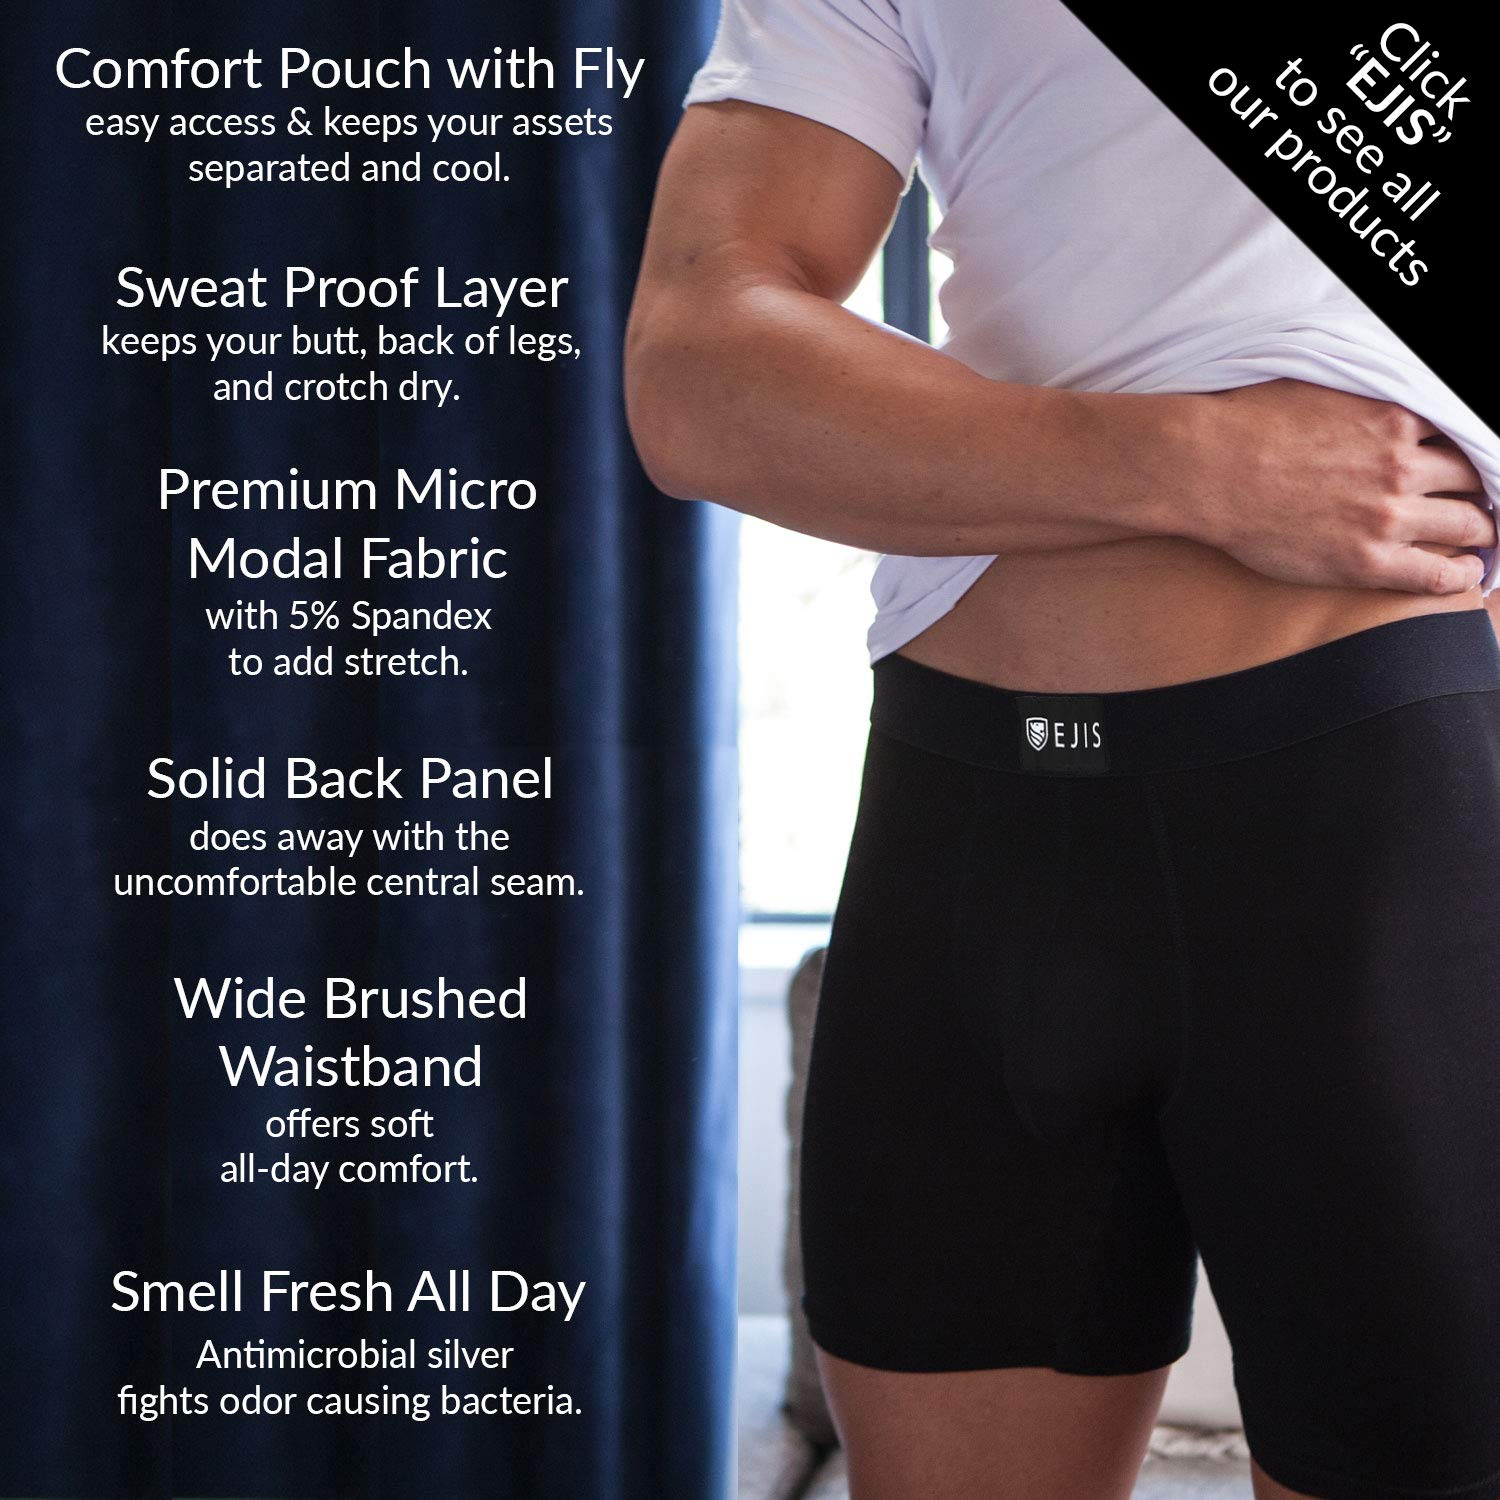 Ejis Regular Mens Undershirts Multi-Pack Crew Neck White Micro Modal Shirt Underwear with Antimicrobial Silver 3 Pack